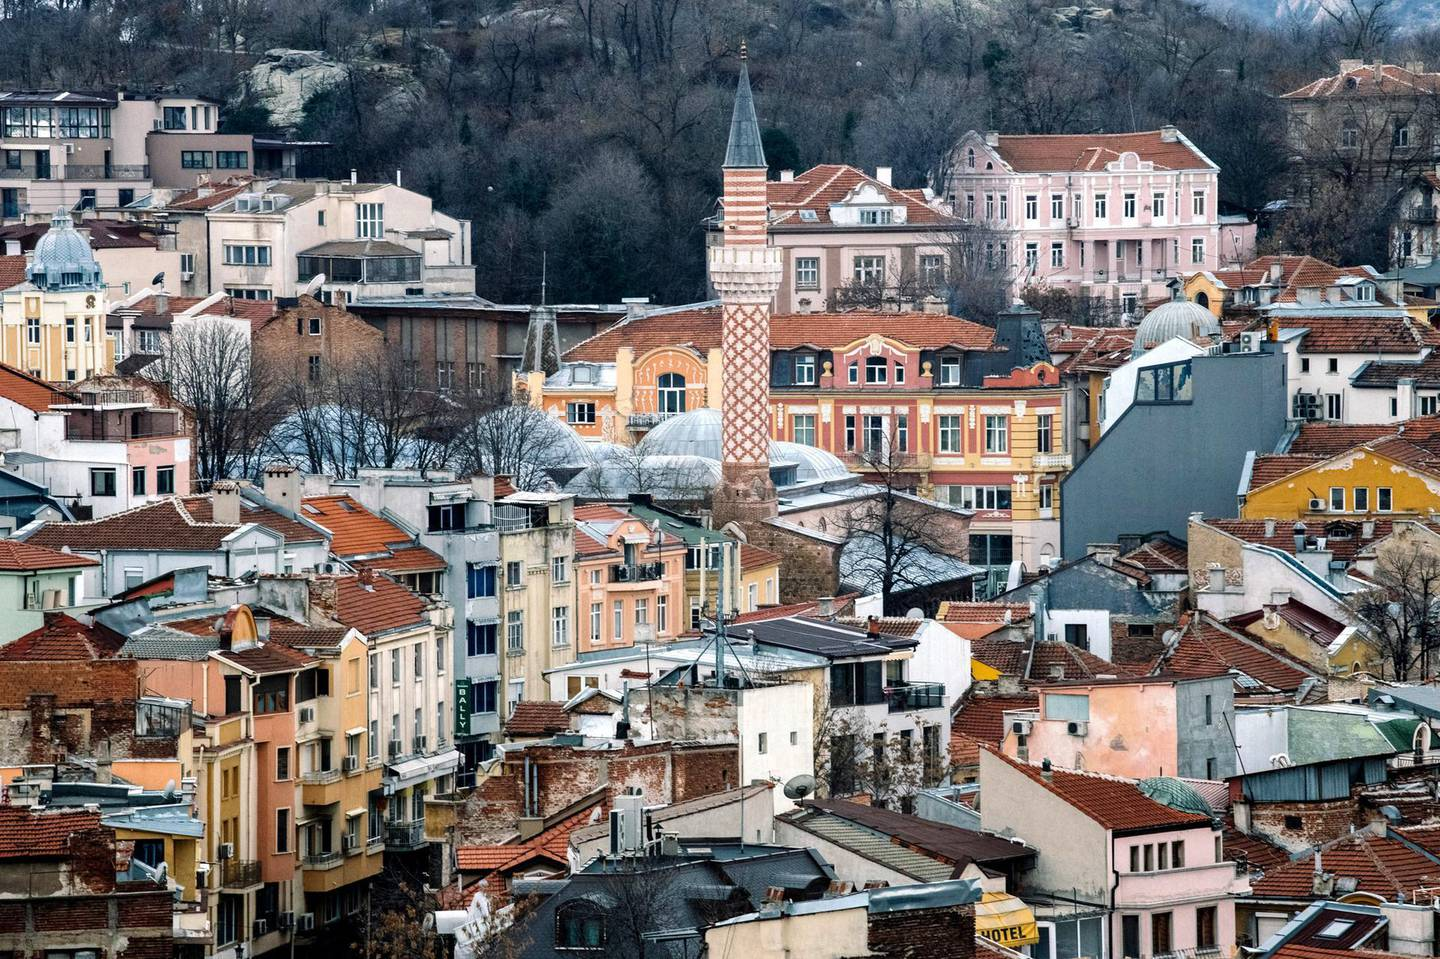 A picture taken on January 7, 2019 shows a view of the old town of Bulgarian southern central city of Plovdiv. - Plovdiv and Italian southern city of Matera were selected as the 2019 European capitals of culture. (Photo by Dimitar DILKOFF / AFP)